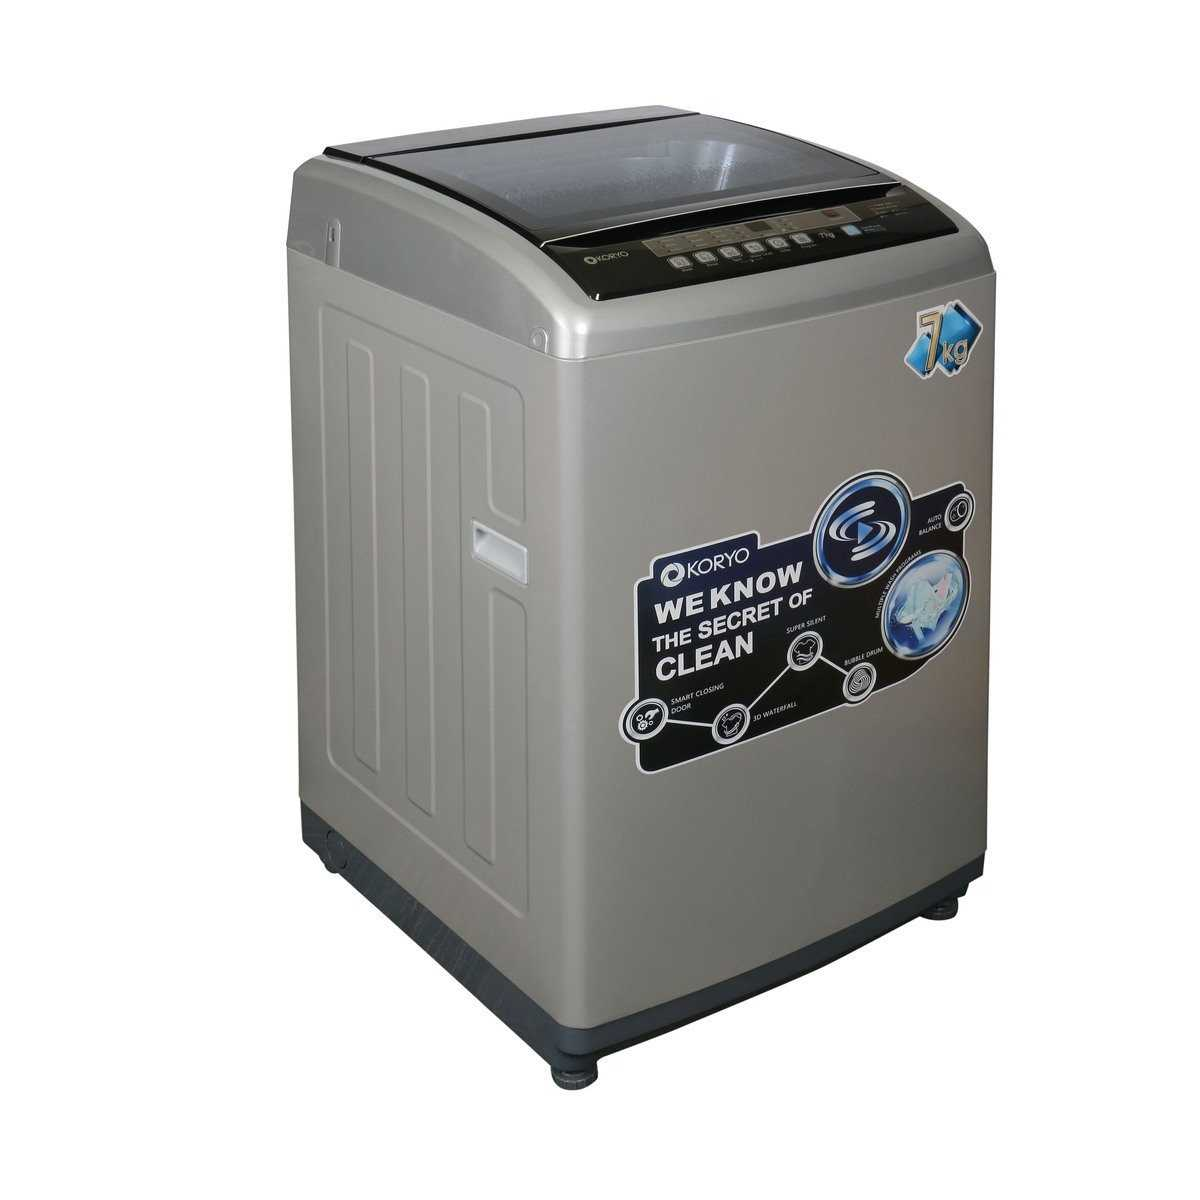 Koryo KWM7017TL 7 Kg Fully Automatic Top Loading Washing Machine